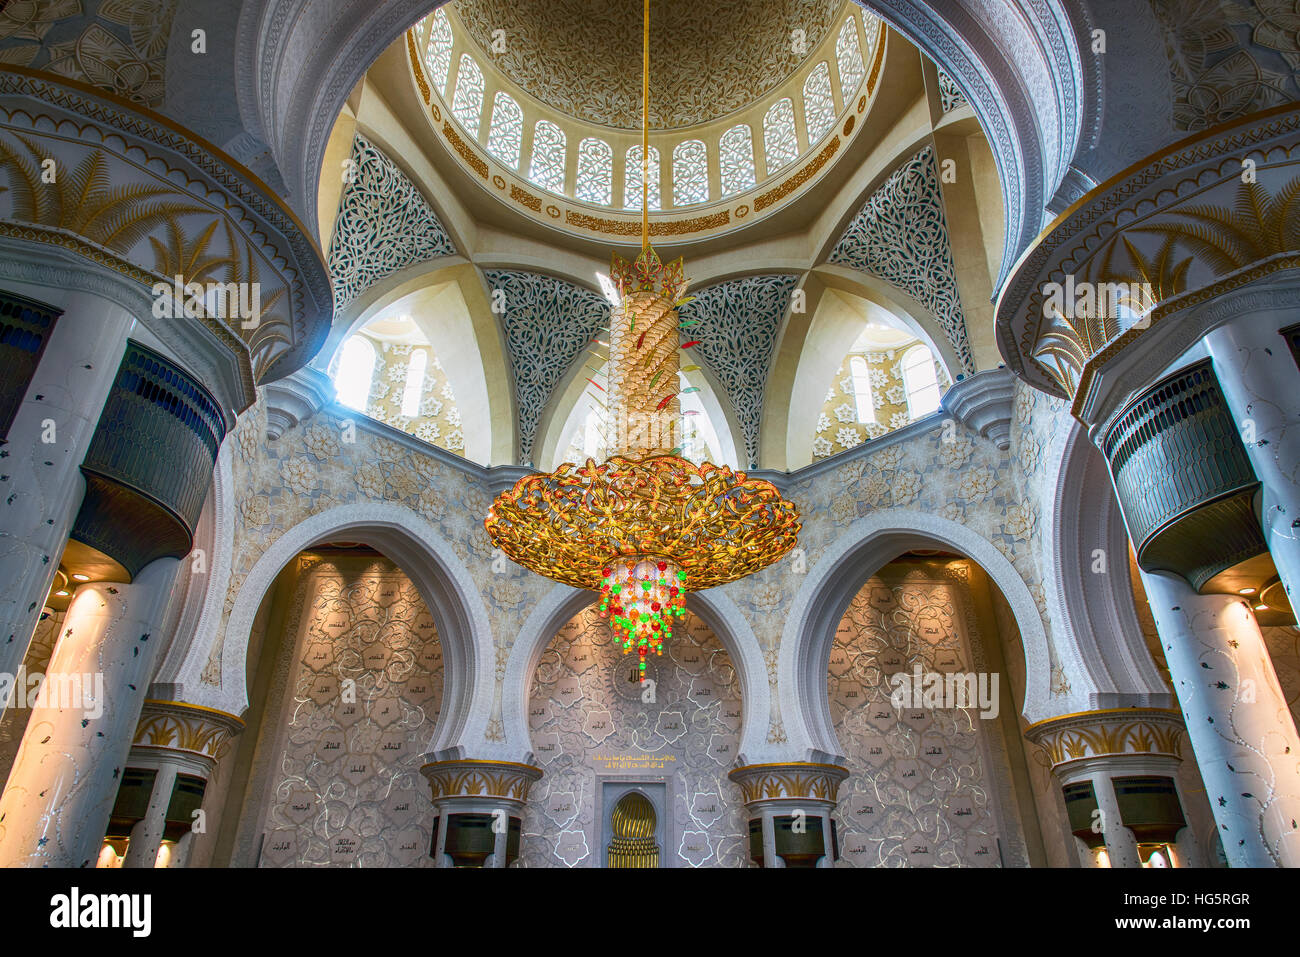 One of the chandeliers adorning the main prayer hall, Sheikh Zayed Mosque, Abu Dhabi, United Arab Emirates - Stock Image